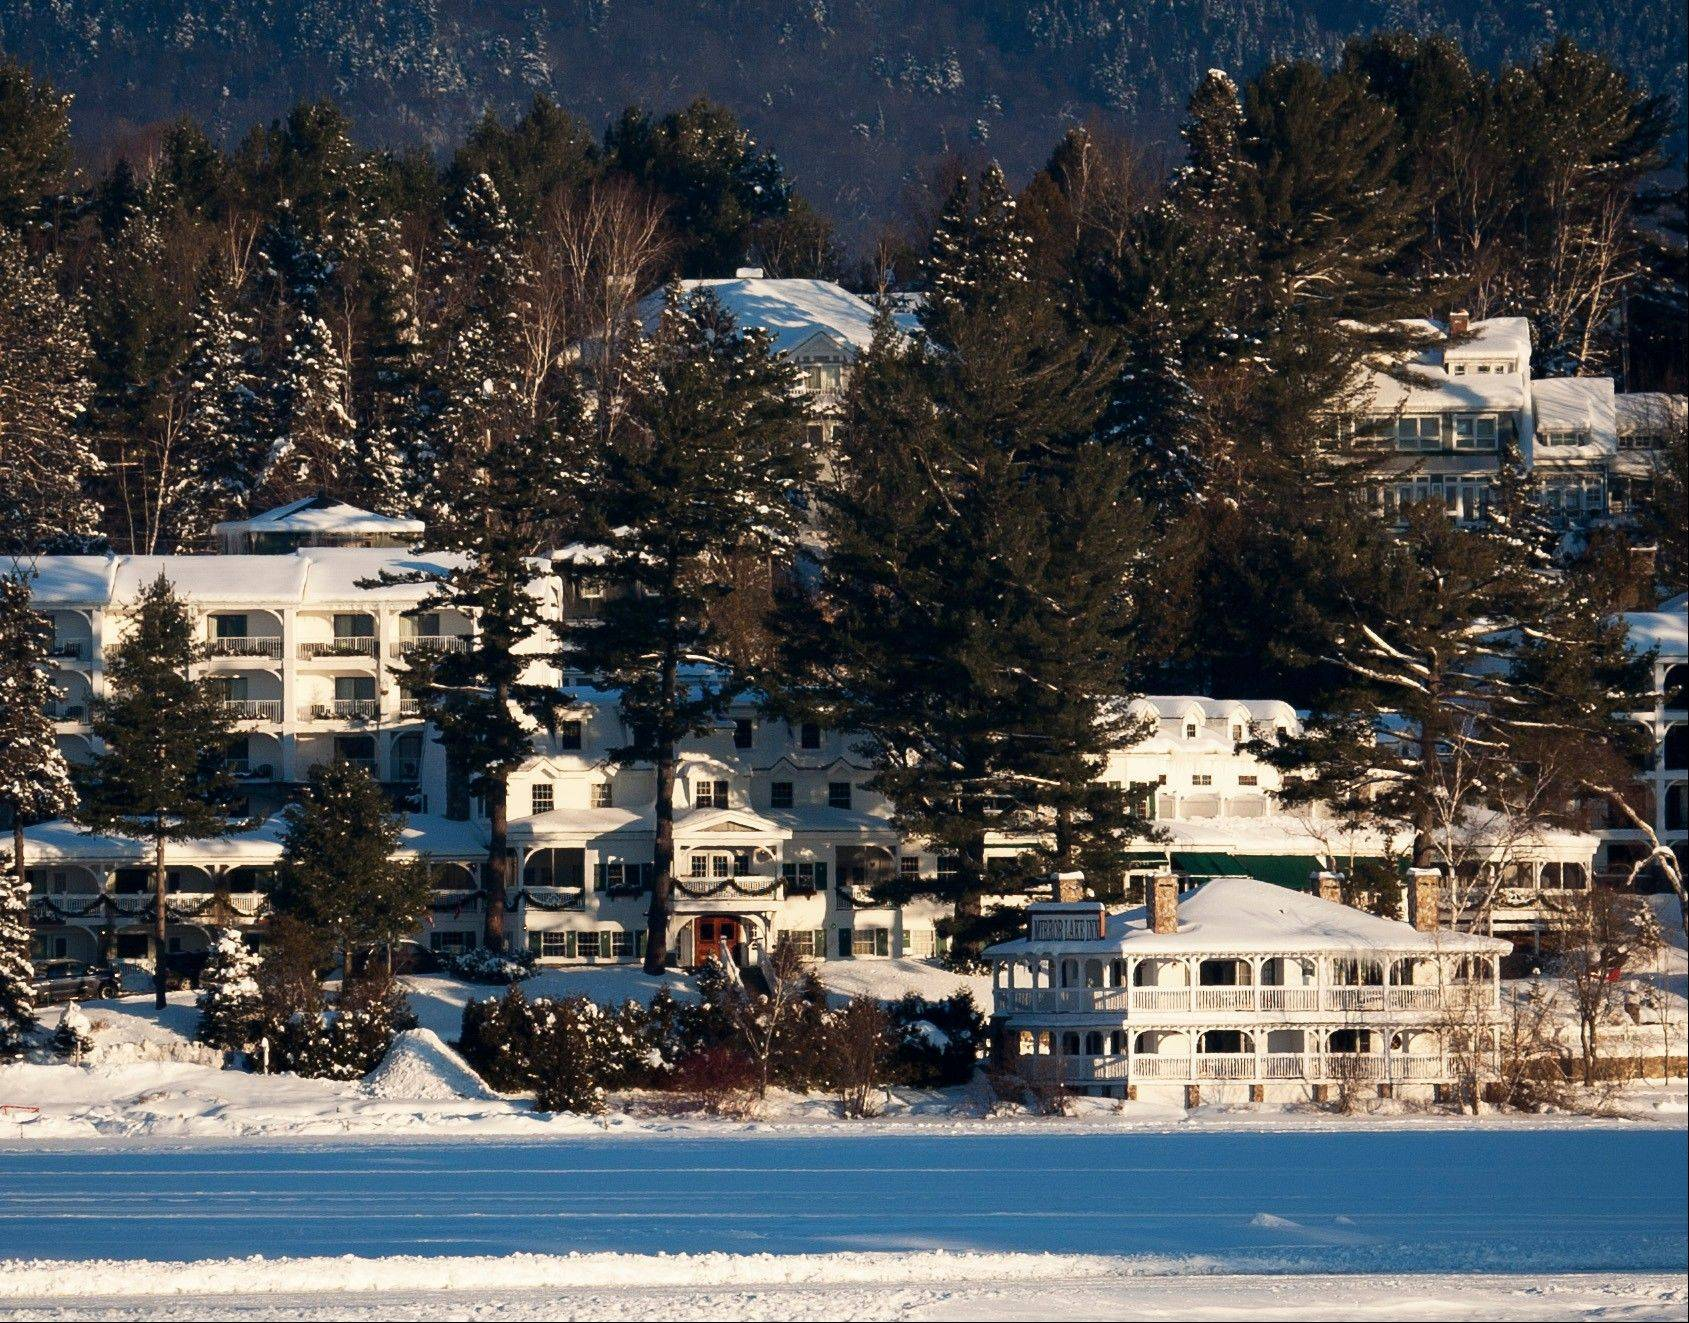 Mirror in Lake Placid is known for excellent hospitality and has received numerous awards.